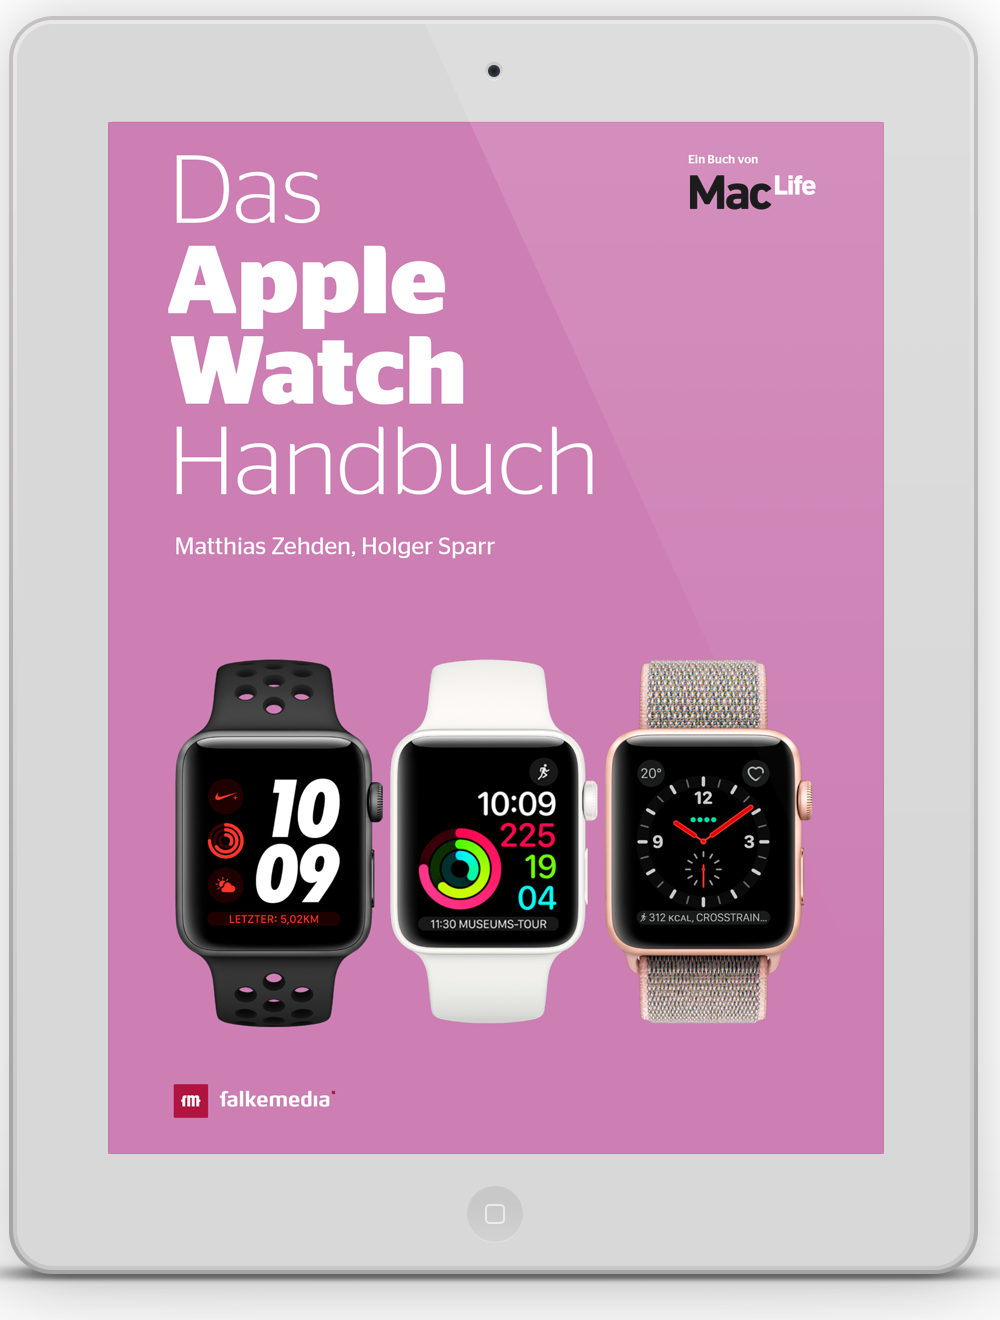 Maclife - Apple Watch Handbuch 2018